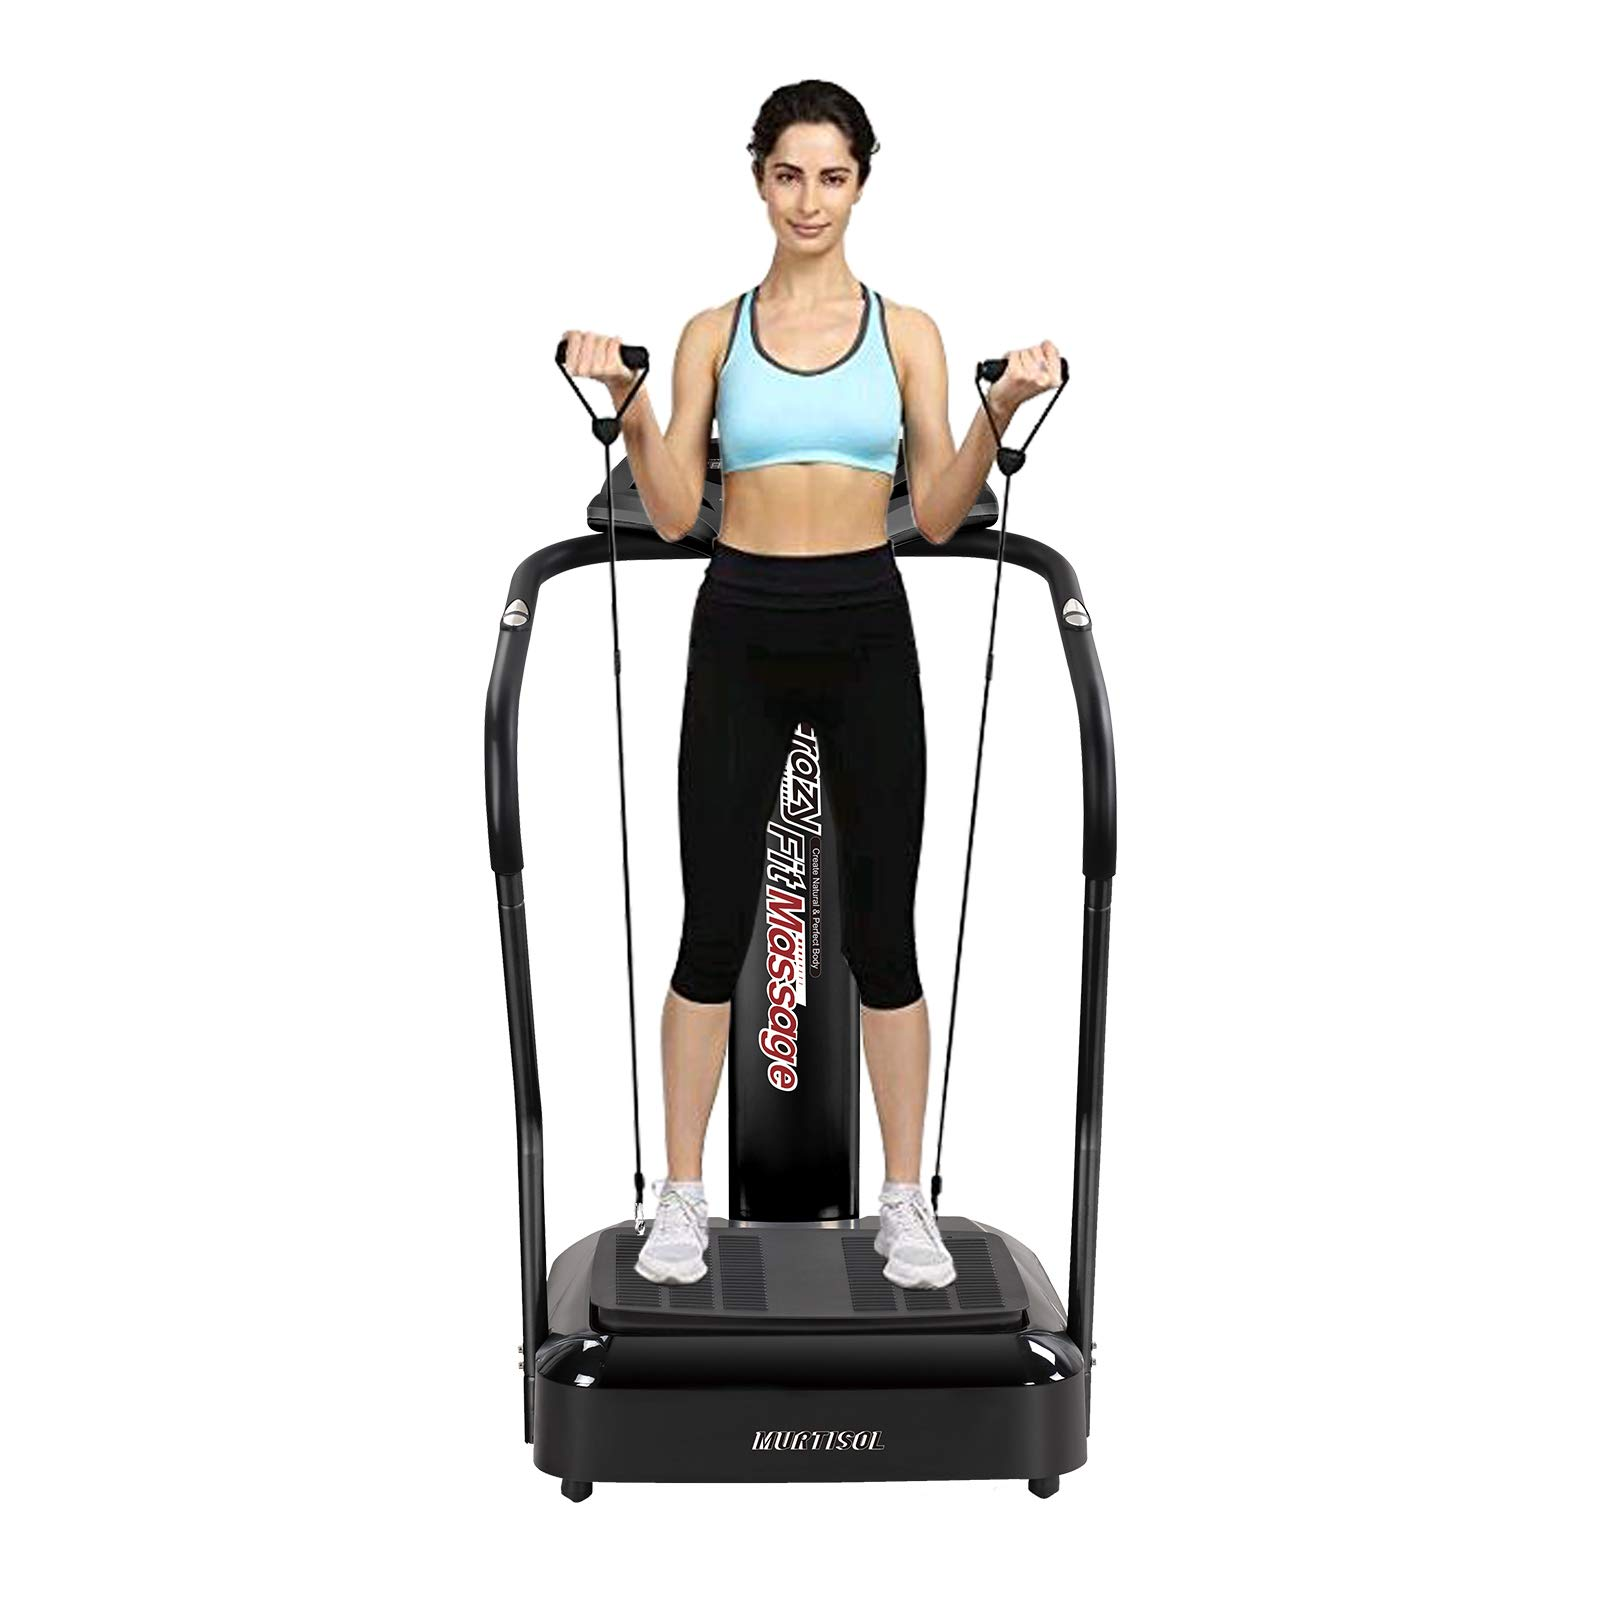 Murtisol Vibration Platform Power Plate with Heart Rate Grips,Whole Body Vibration Machine Massage Slim with Resistance Bands by Murtisol (Image #1)